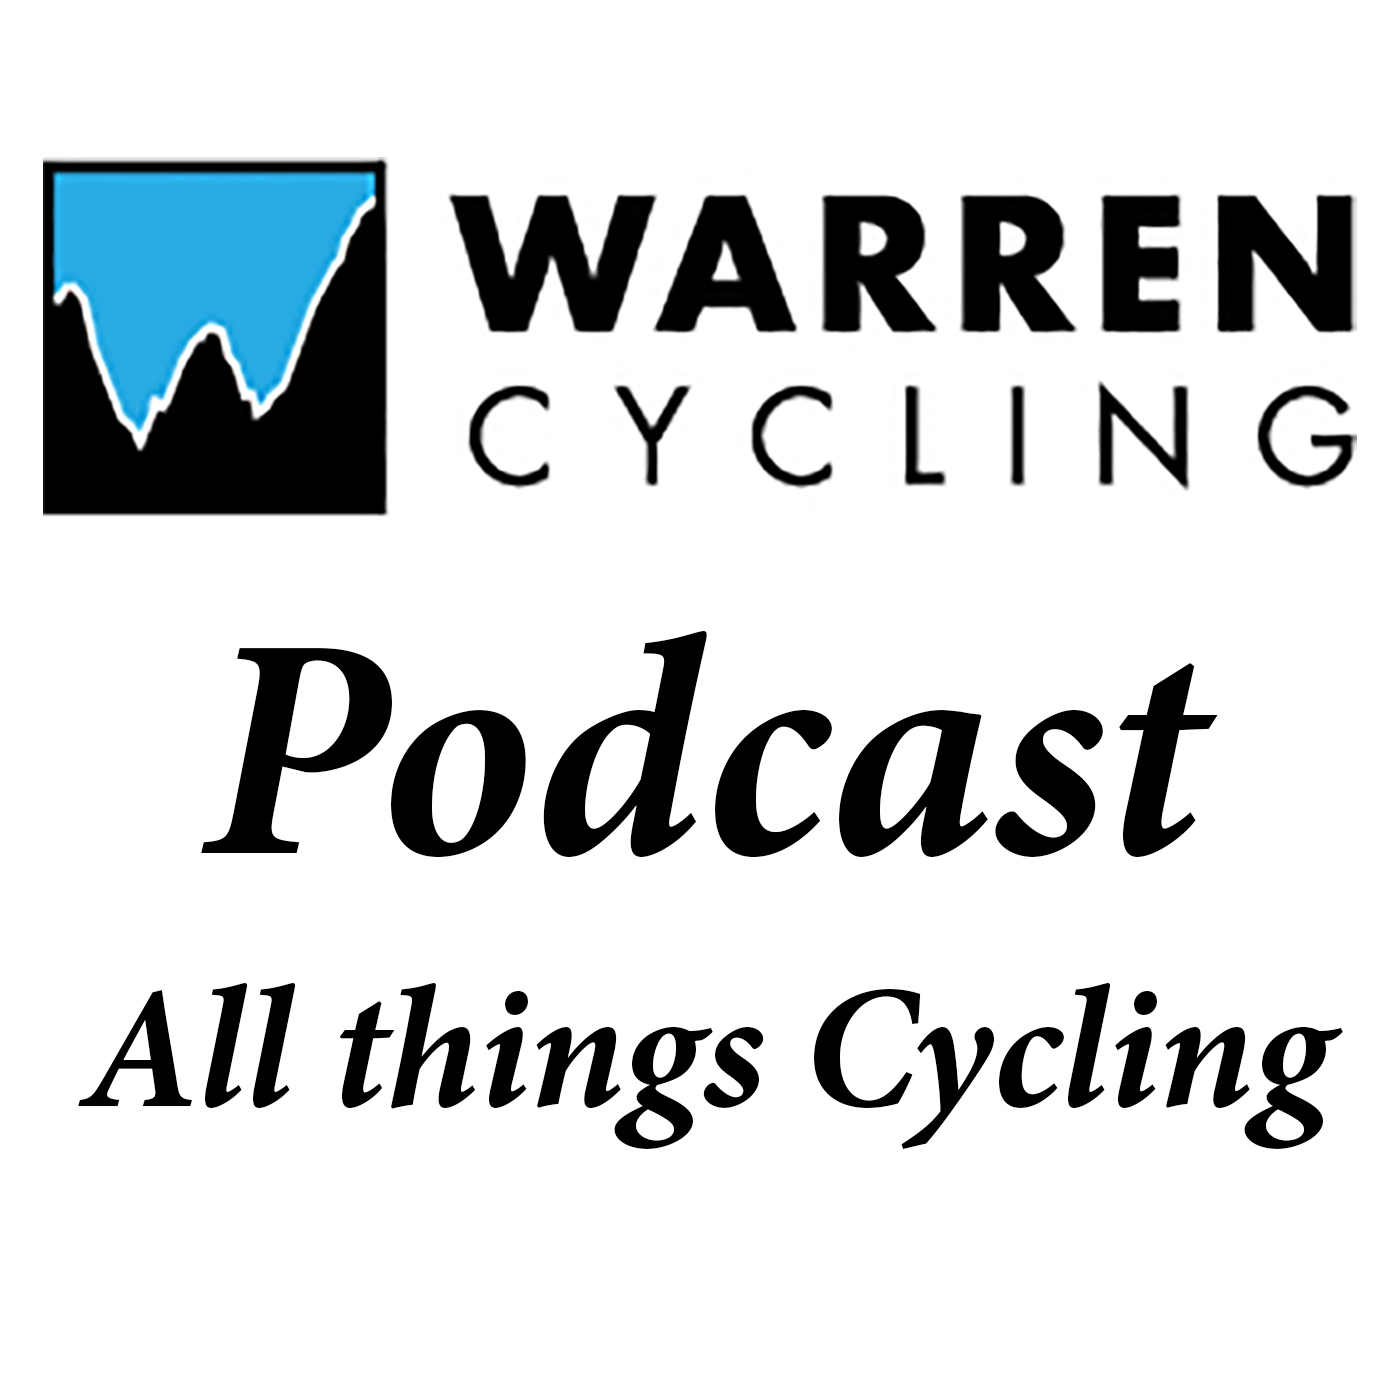 Warren Cycling Podcast Episode 246: Spring Cobbles and weeklong stage racing show art